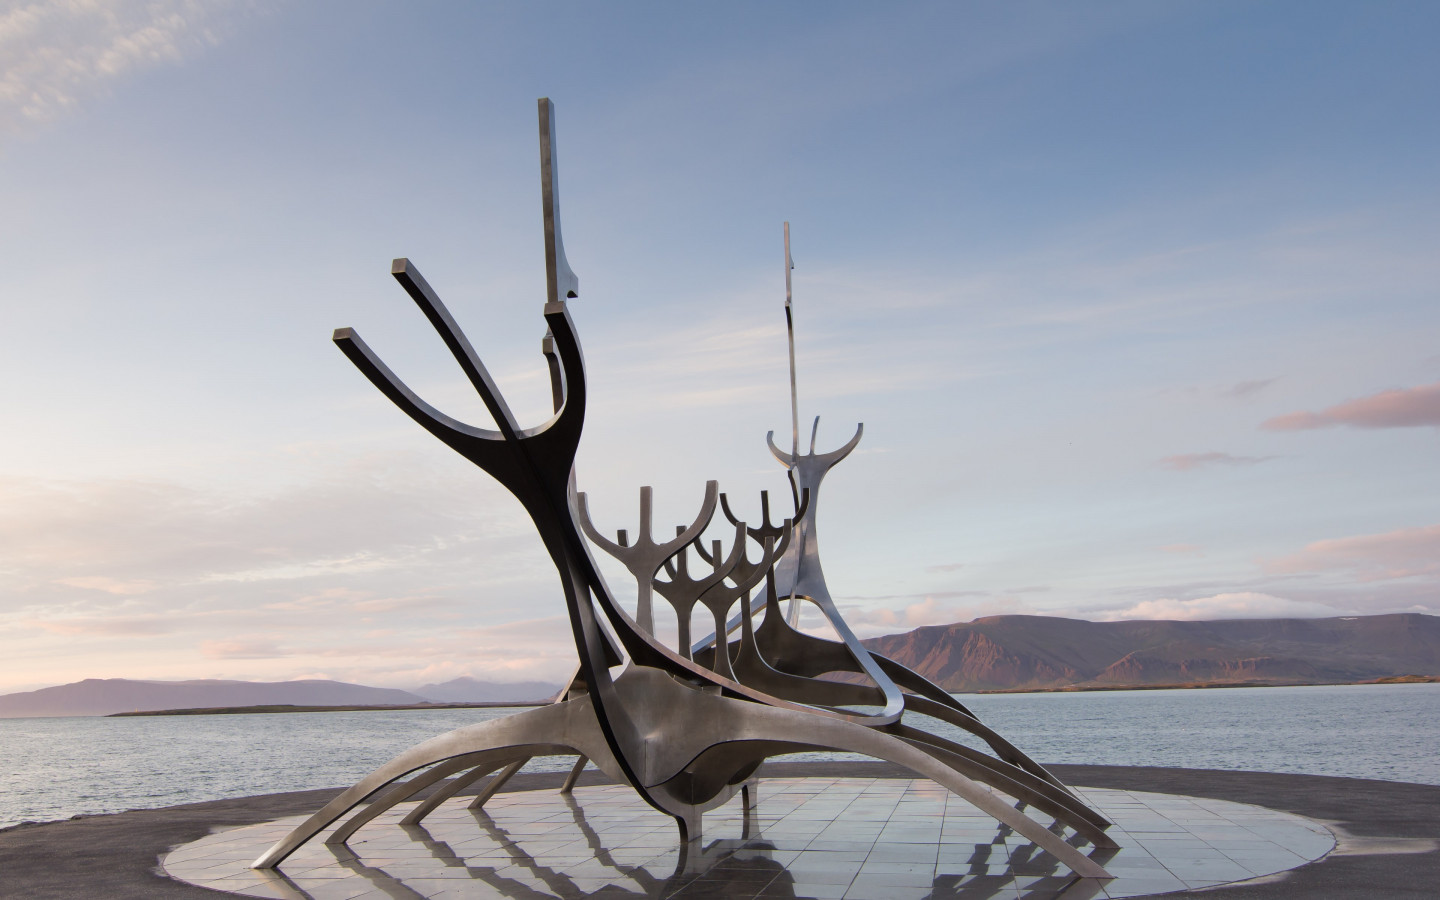 The Sun Voyager from Reykjavik, Iceland | 1440x900 wallpaper